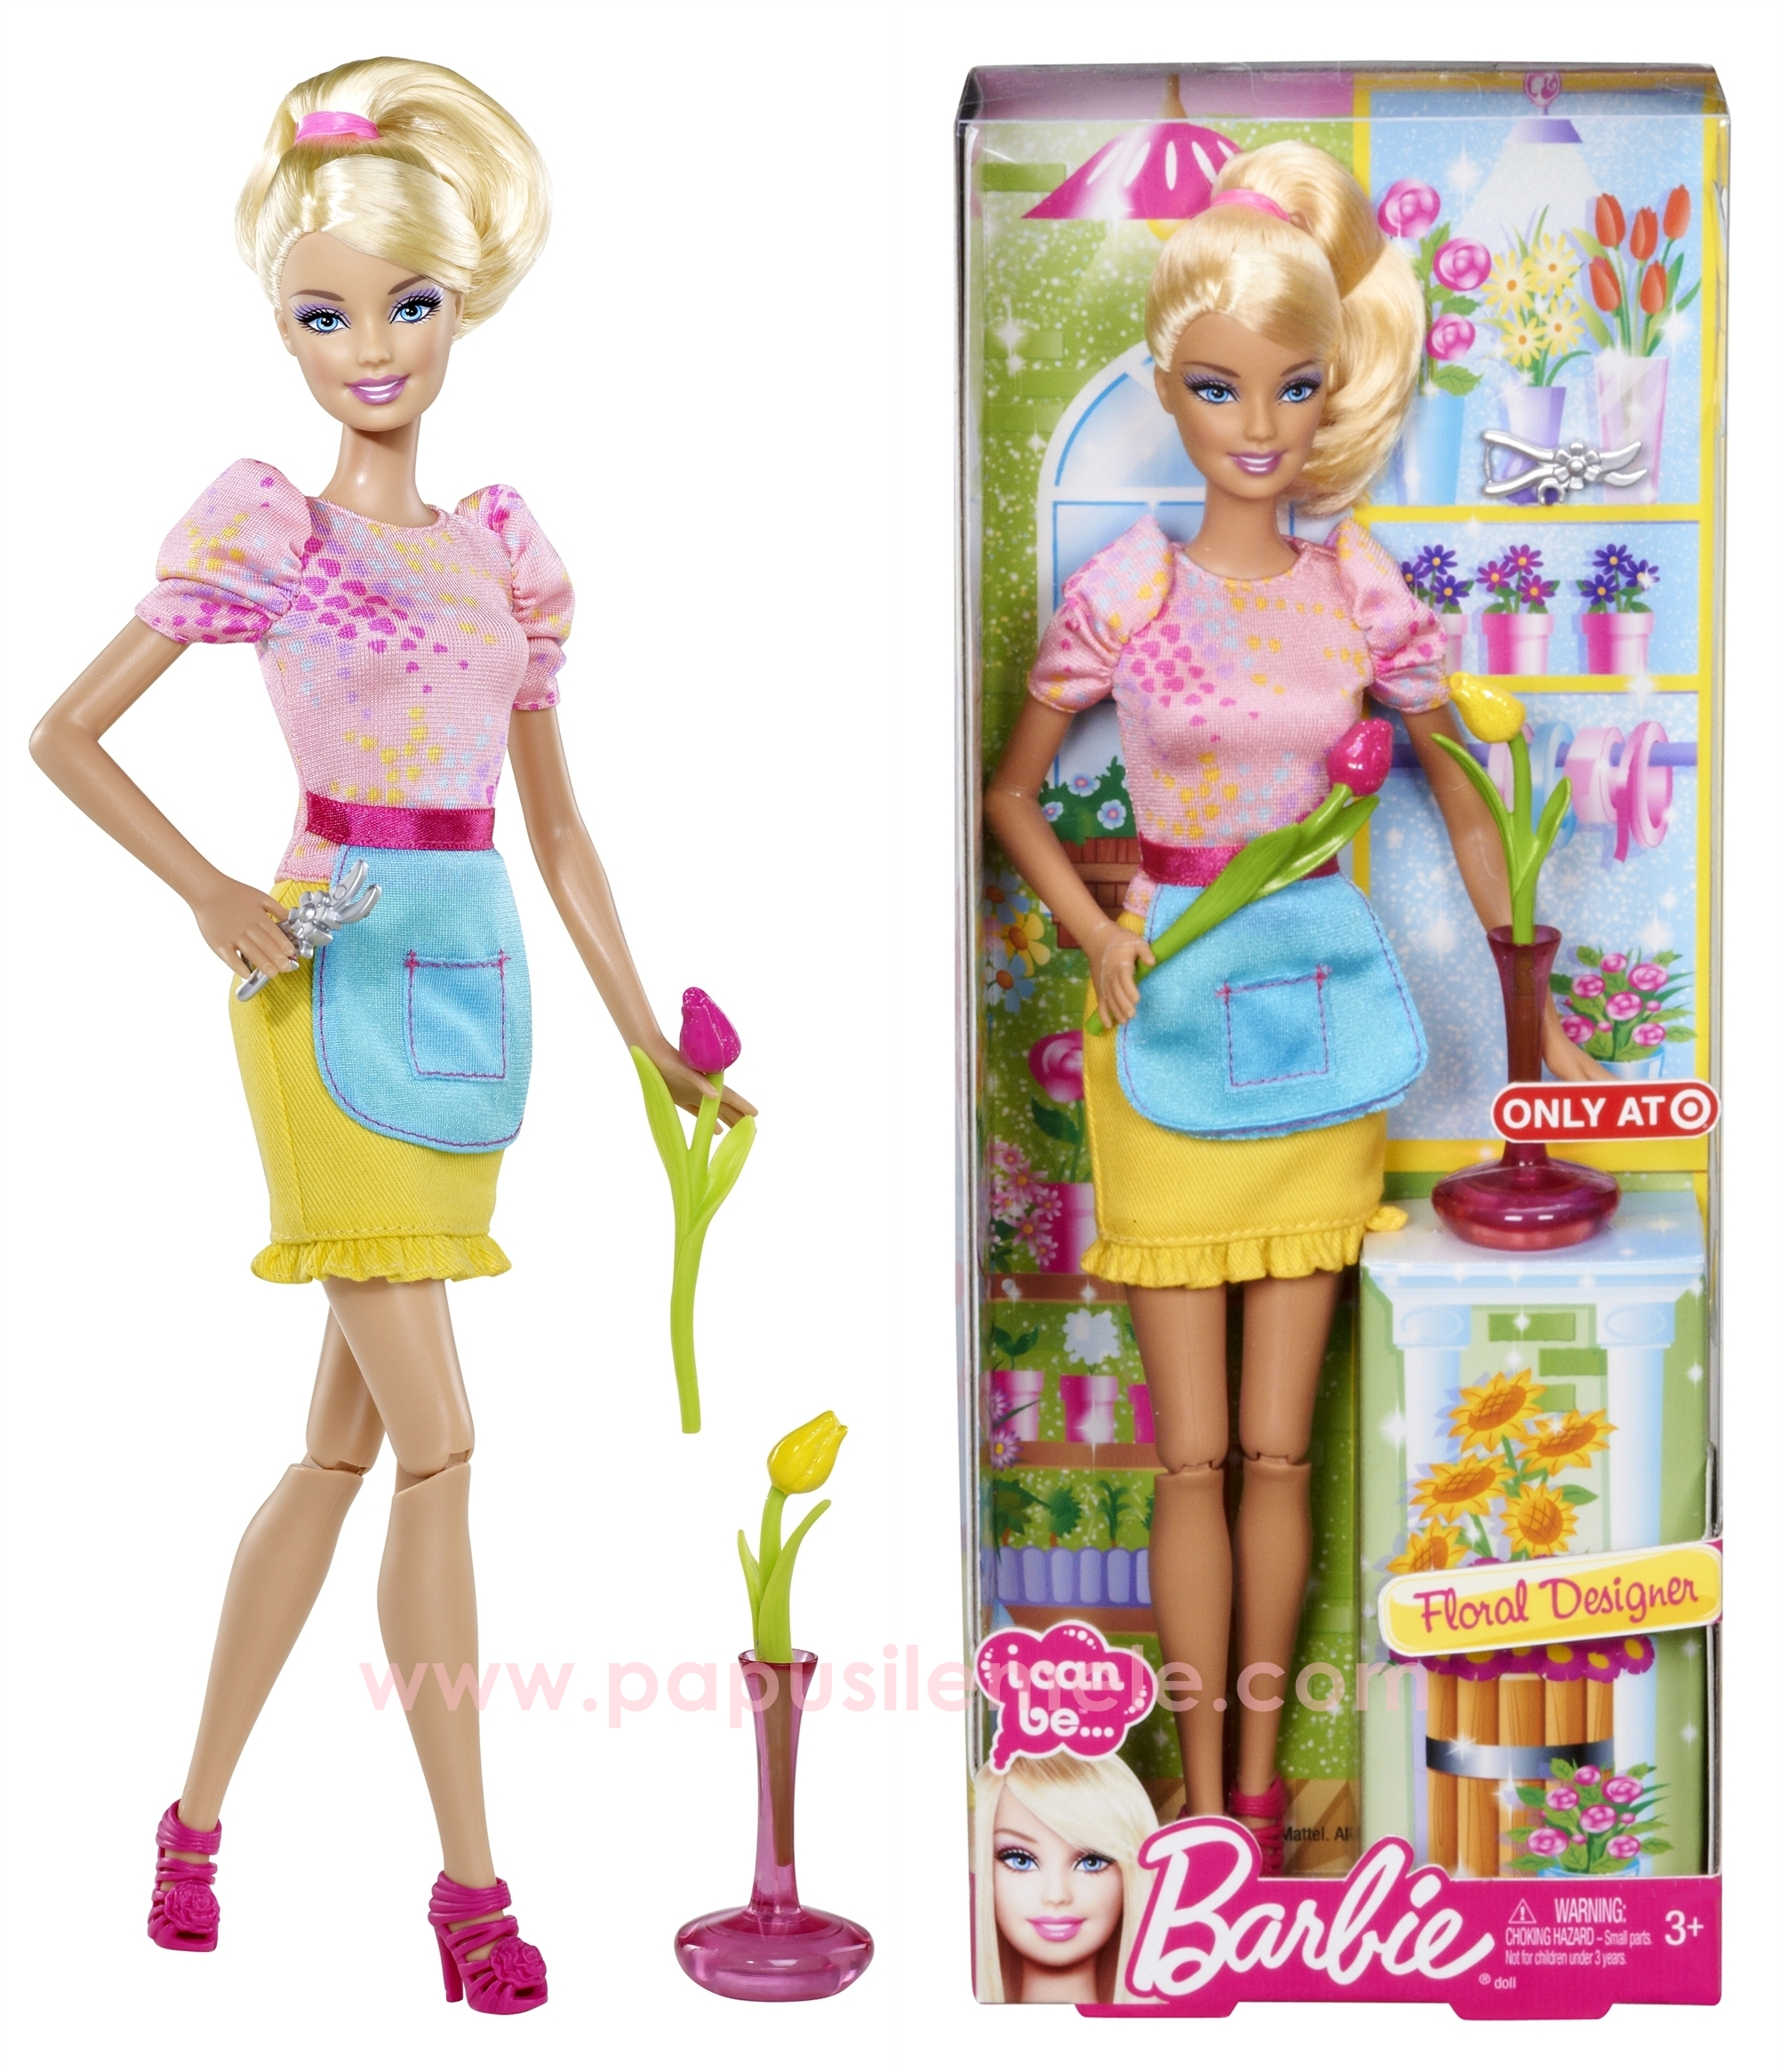 Pin Barbie I Can Be Giornalista Mattel T2692 on Pinterest